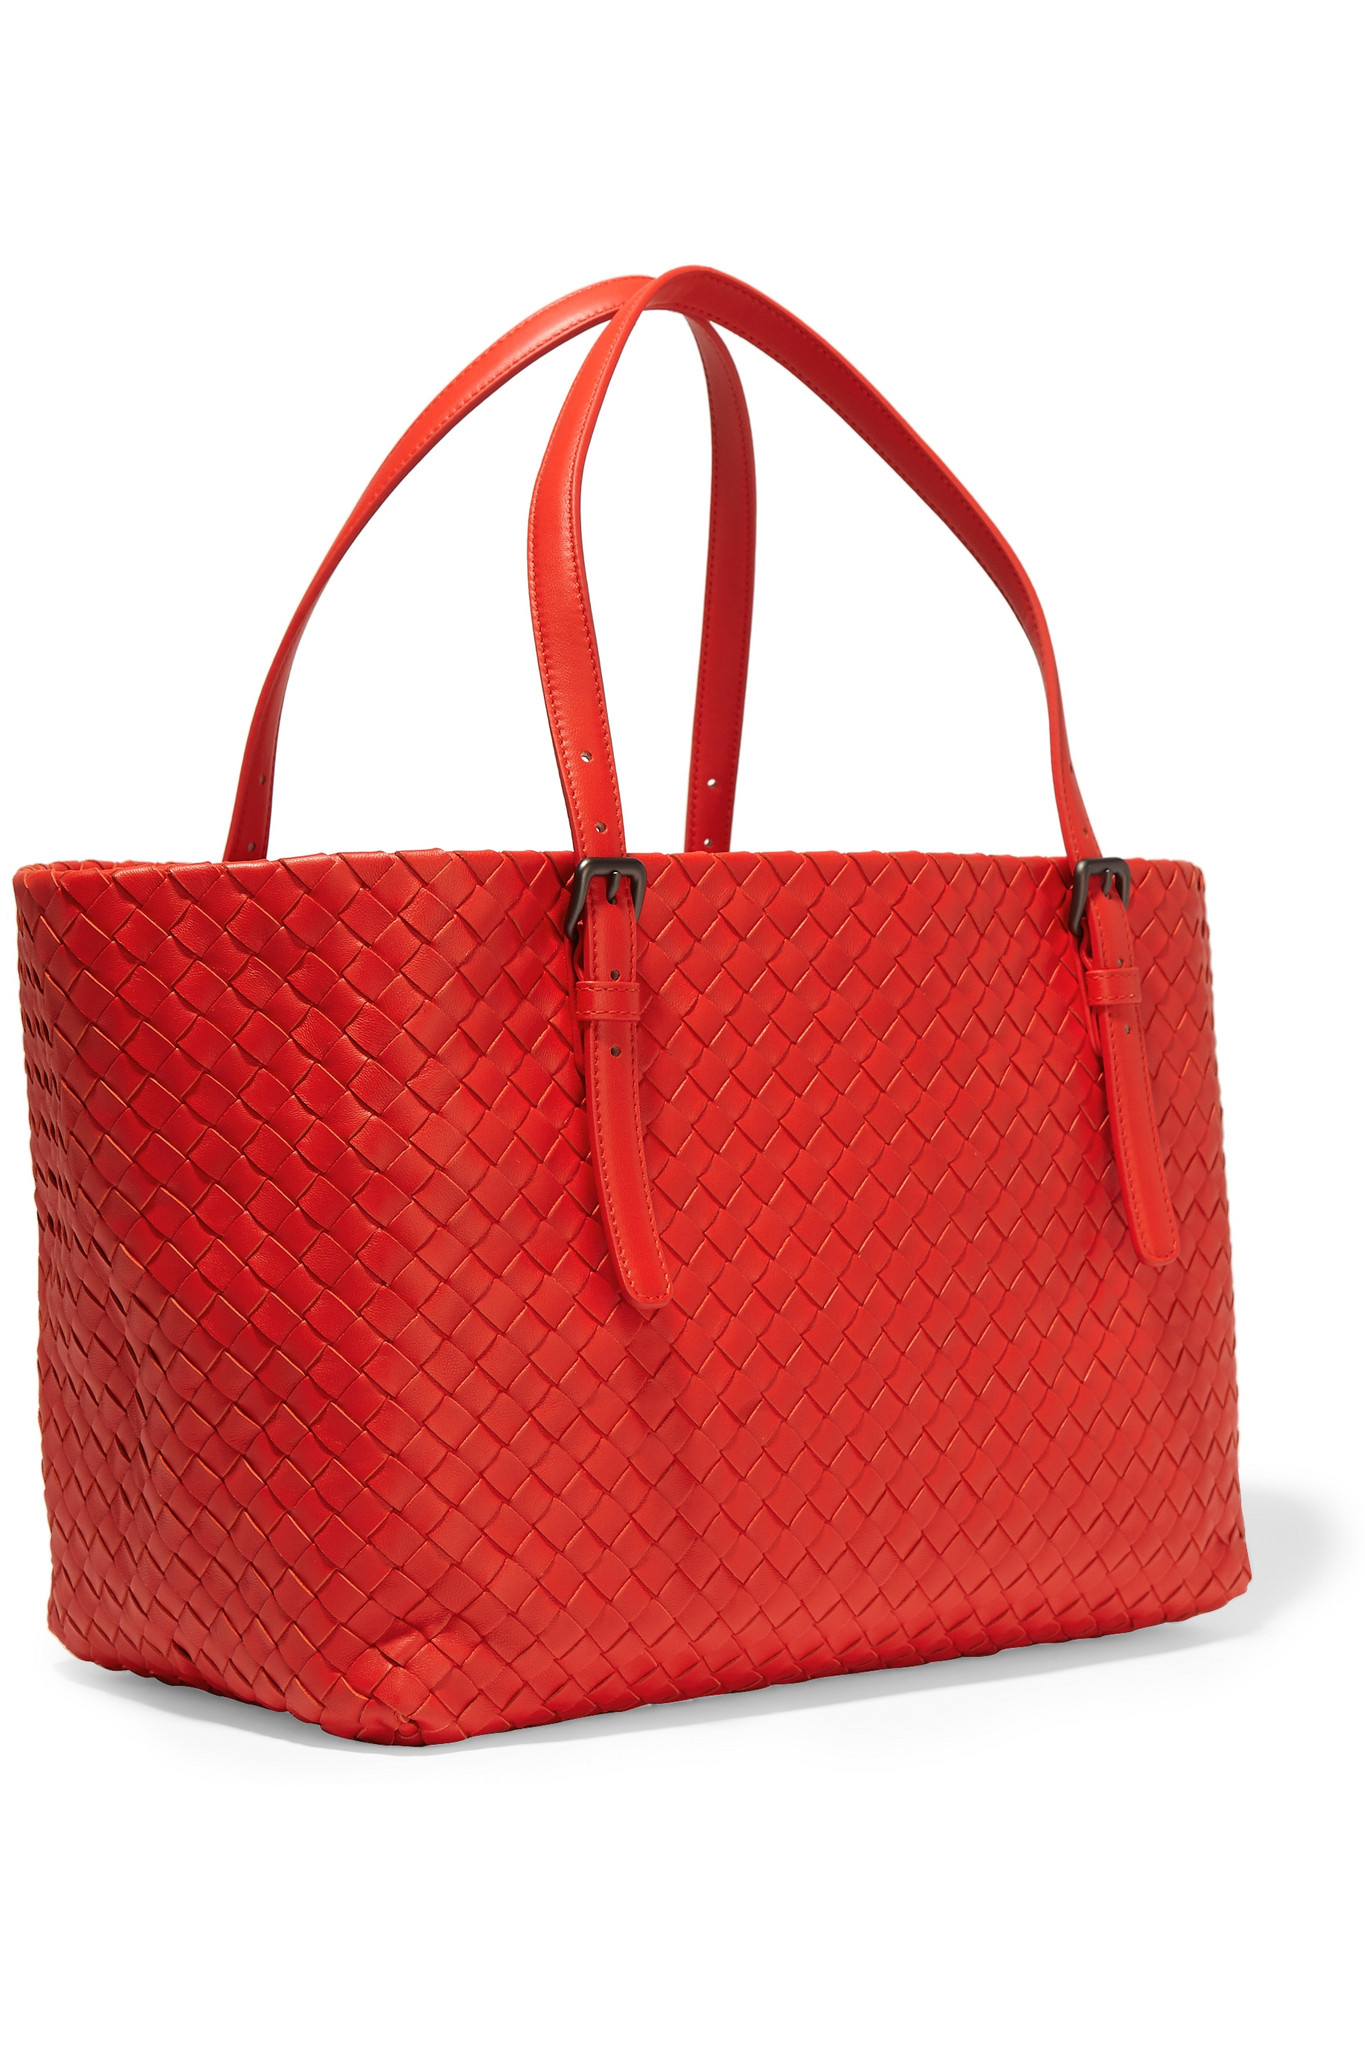 Bottega Veneta Shopper Medium Intrecciato Leather Tote in Red - Lyst 1cd8aba66525a